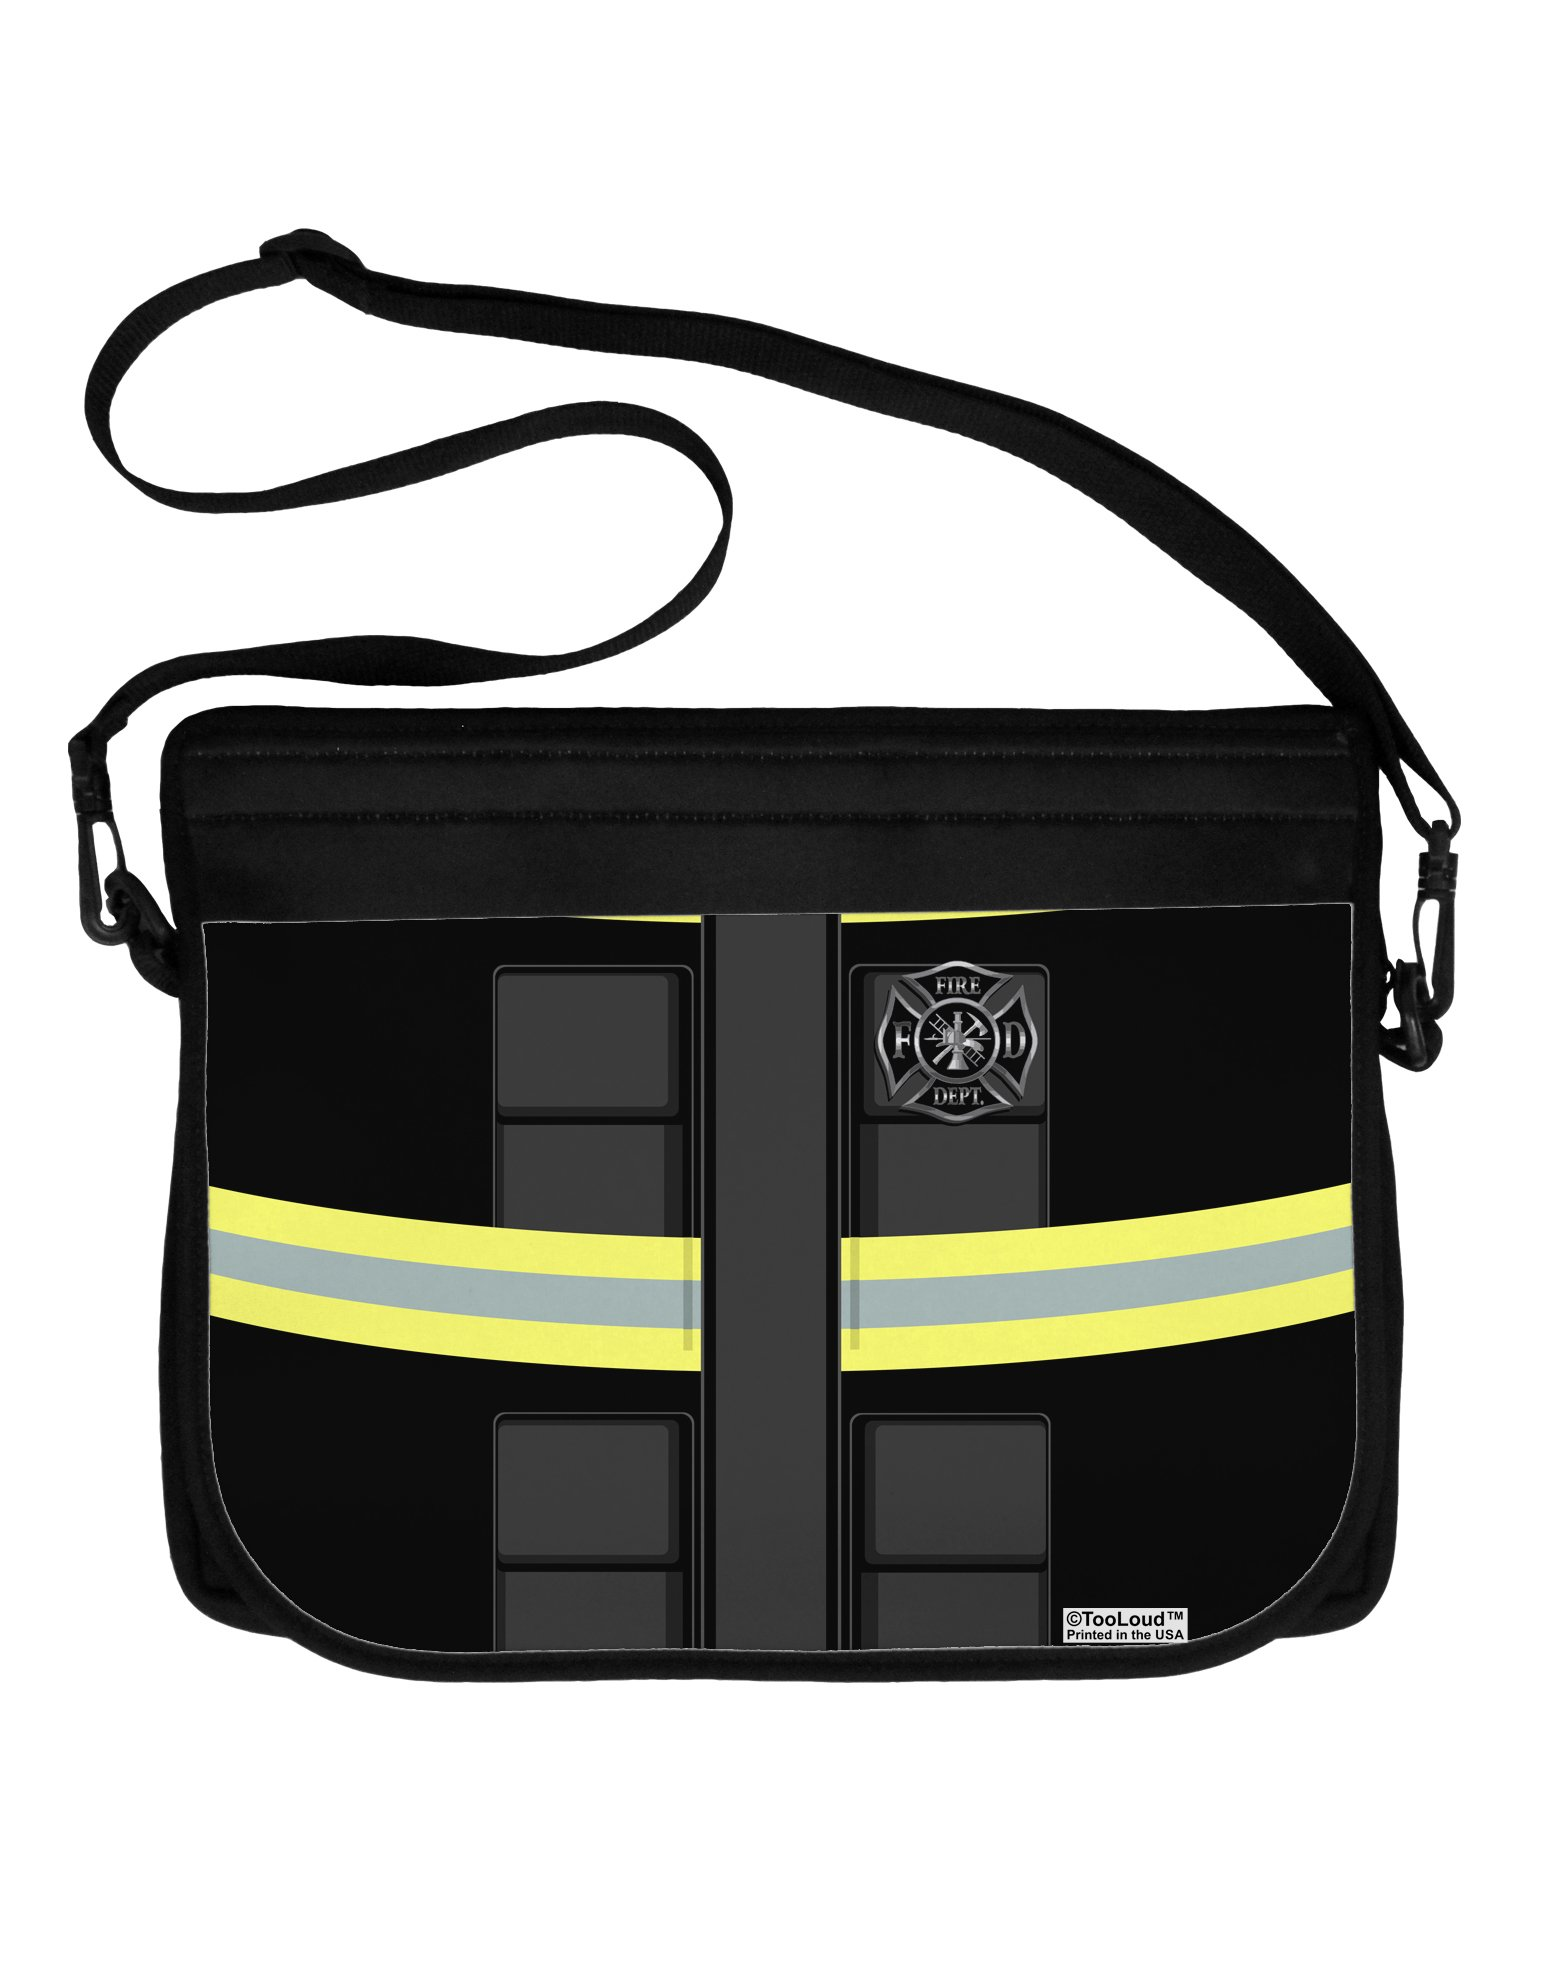 TooLoud Firefighter Black AOP Neoprene Laptop Shoulder Bag All Over Print